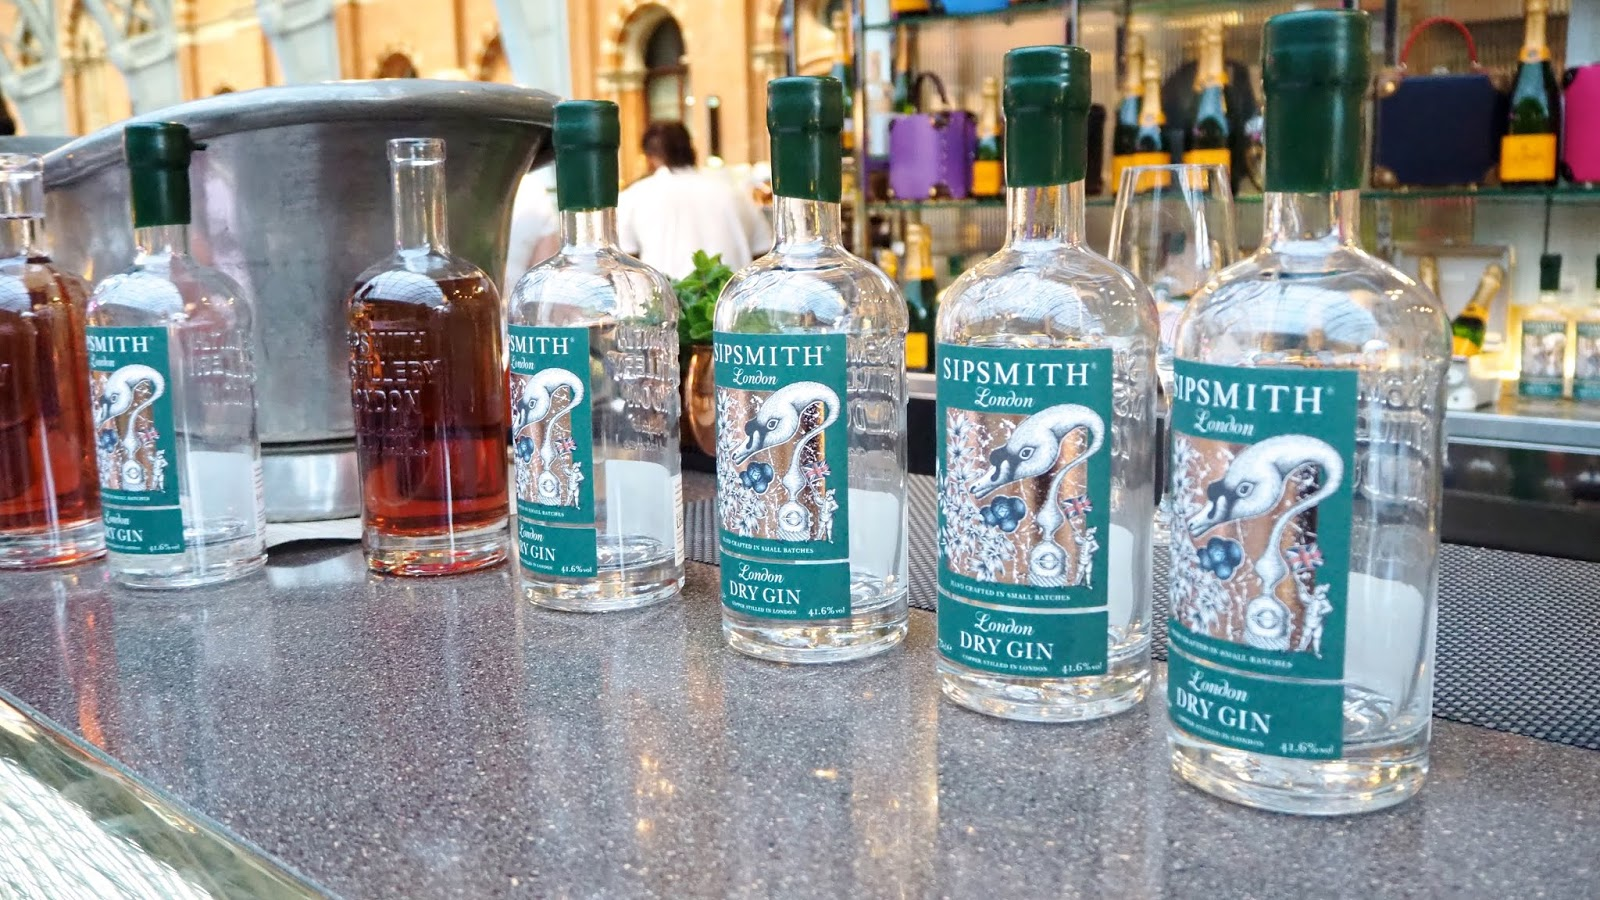 Sipsmith's Gin